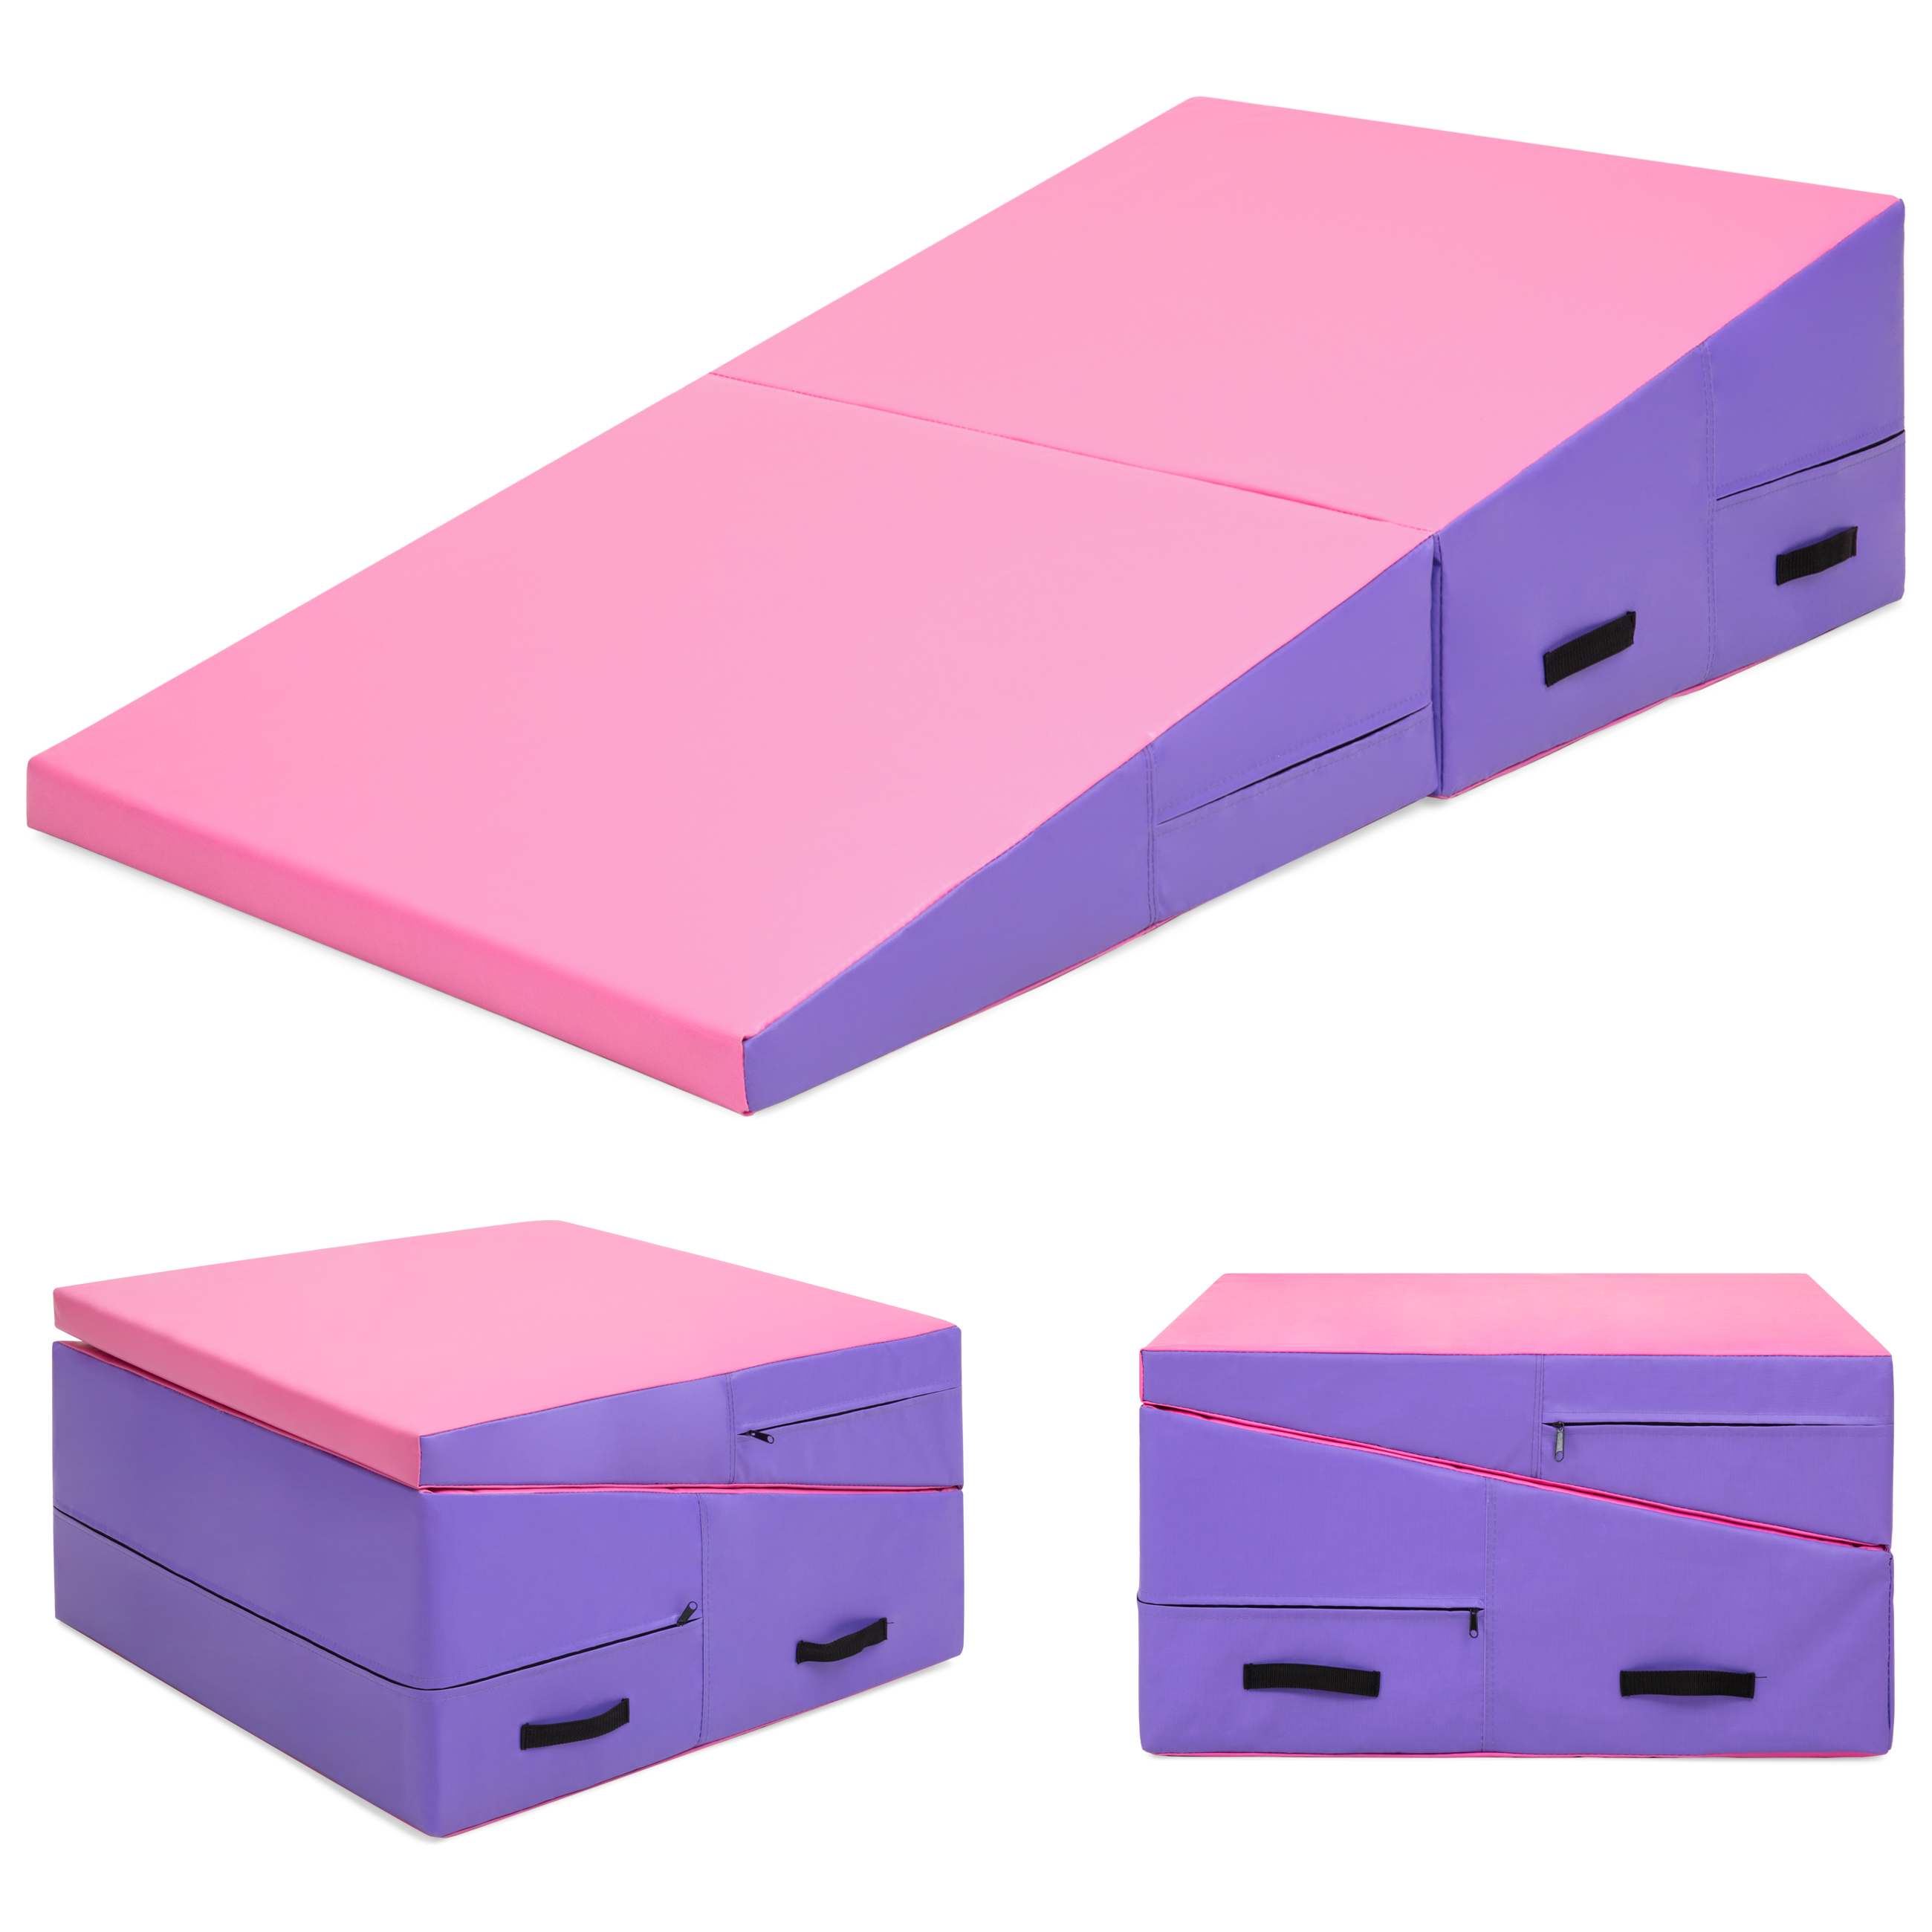 Best Choice Products 71x30x14in Folding 2-Panel Cheese Wedge Incline Gym Mat for Tumbling w/ Handles - Pink/Purple